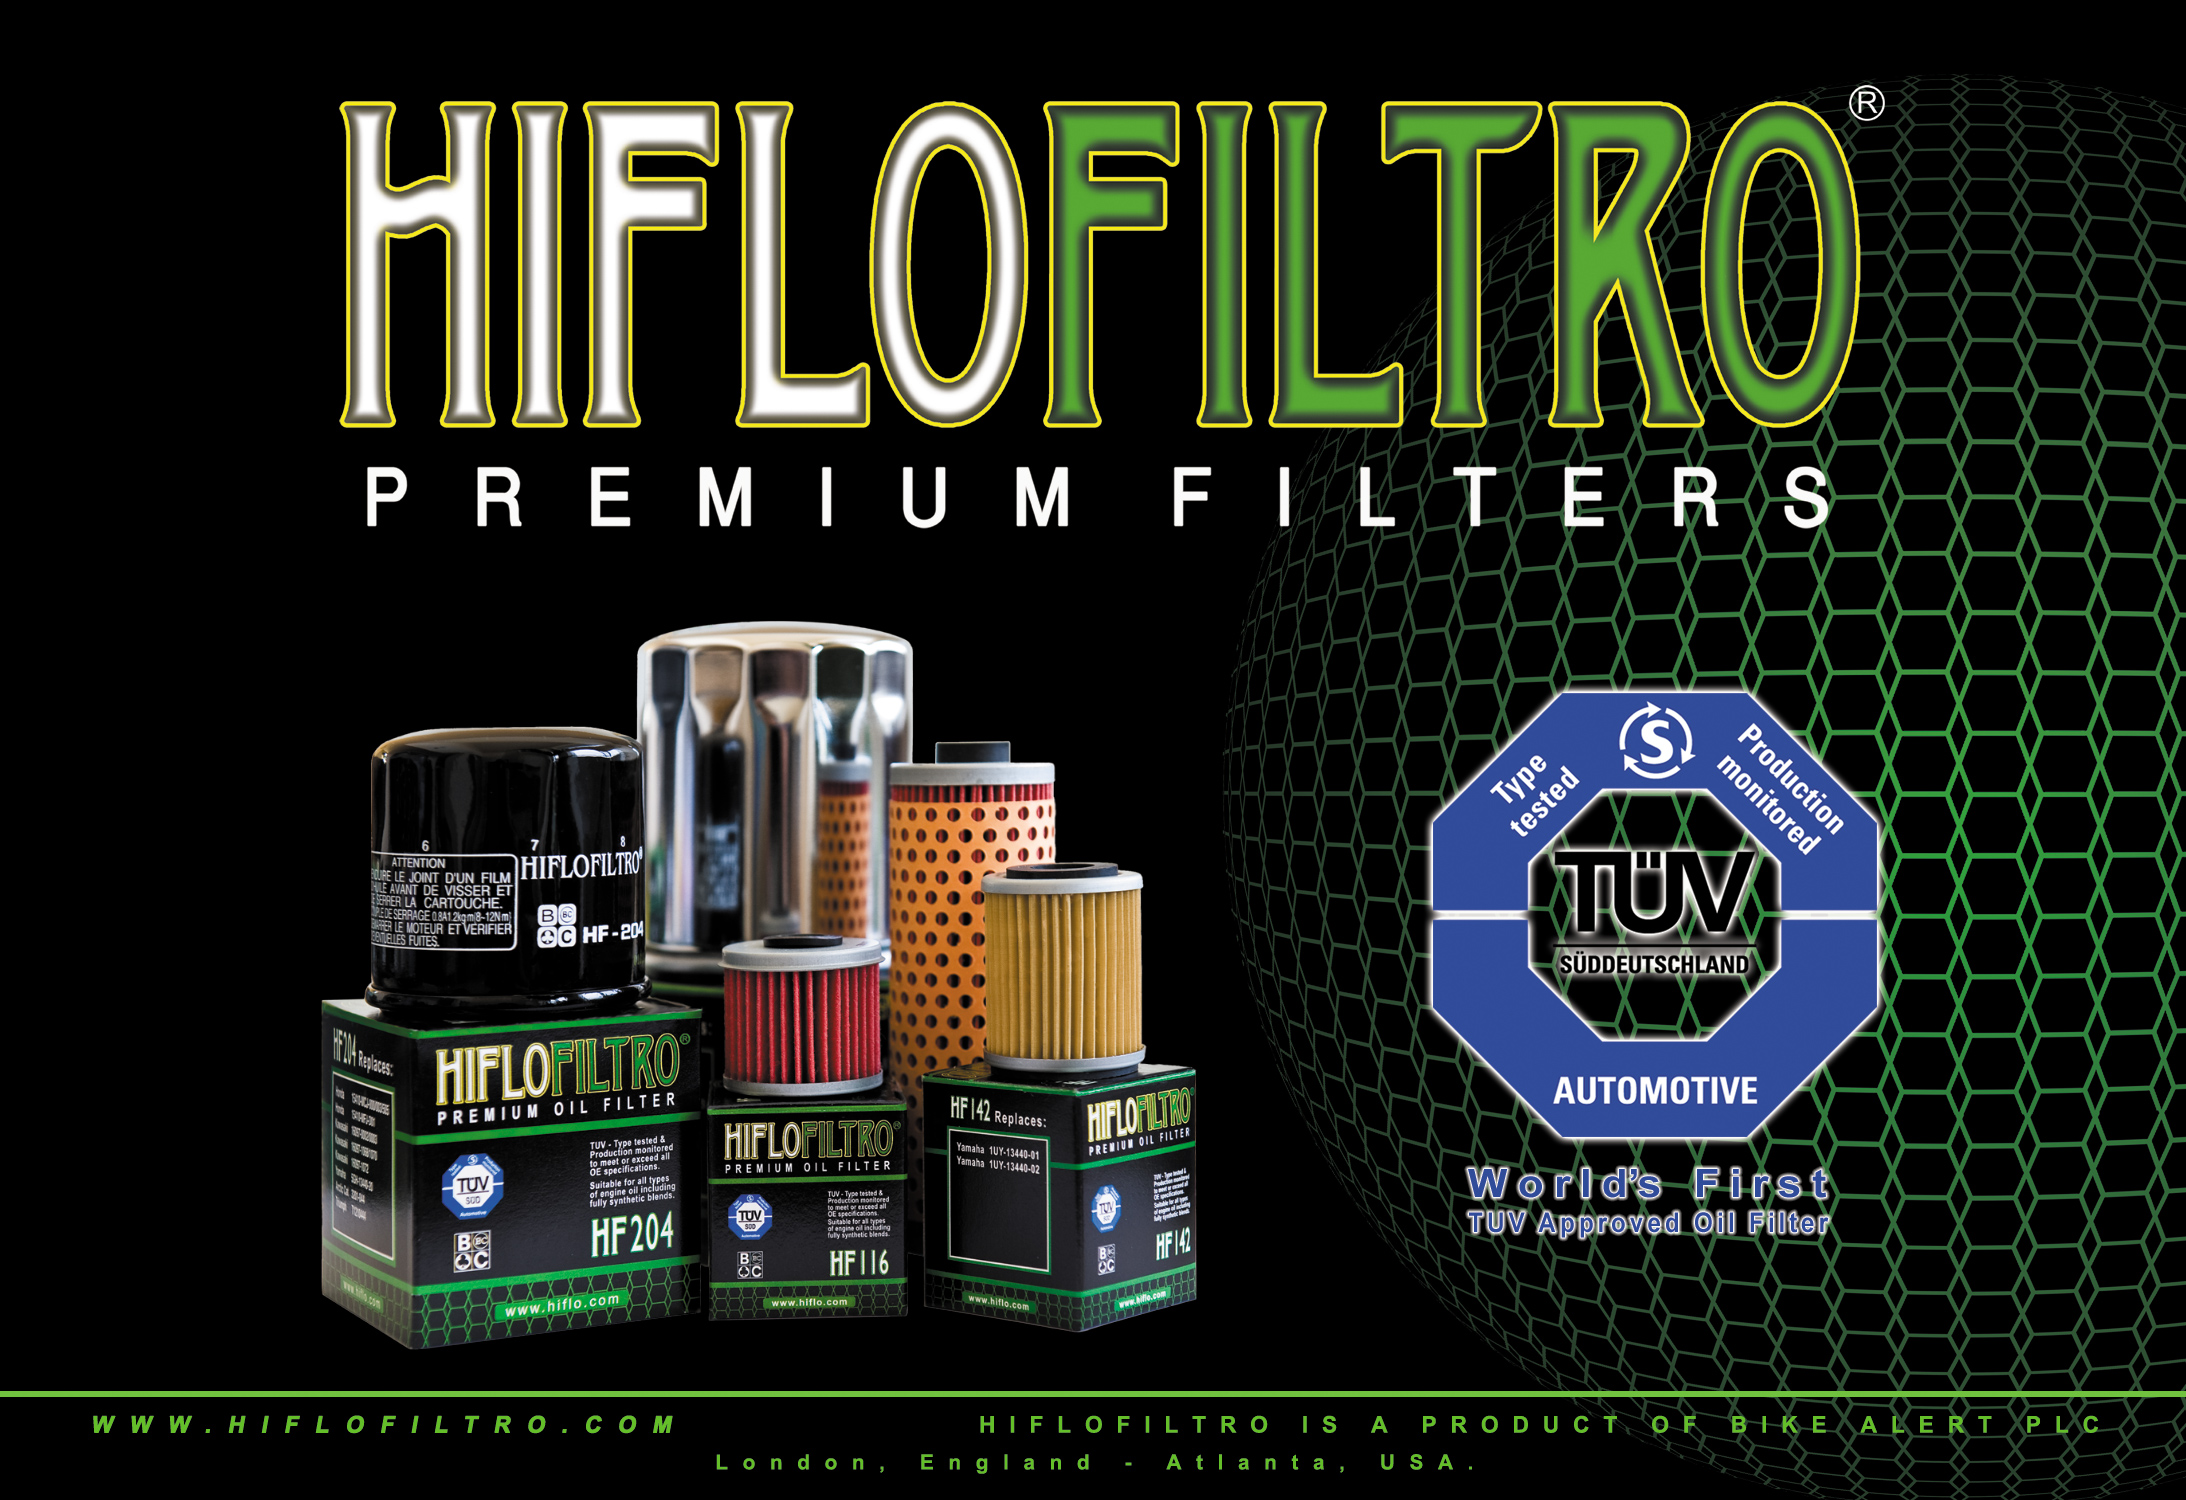 Hi-flo oil filters are the world's first and only TÜV approved motorcycle oil filter